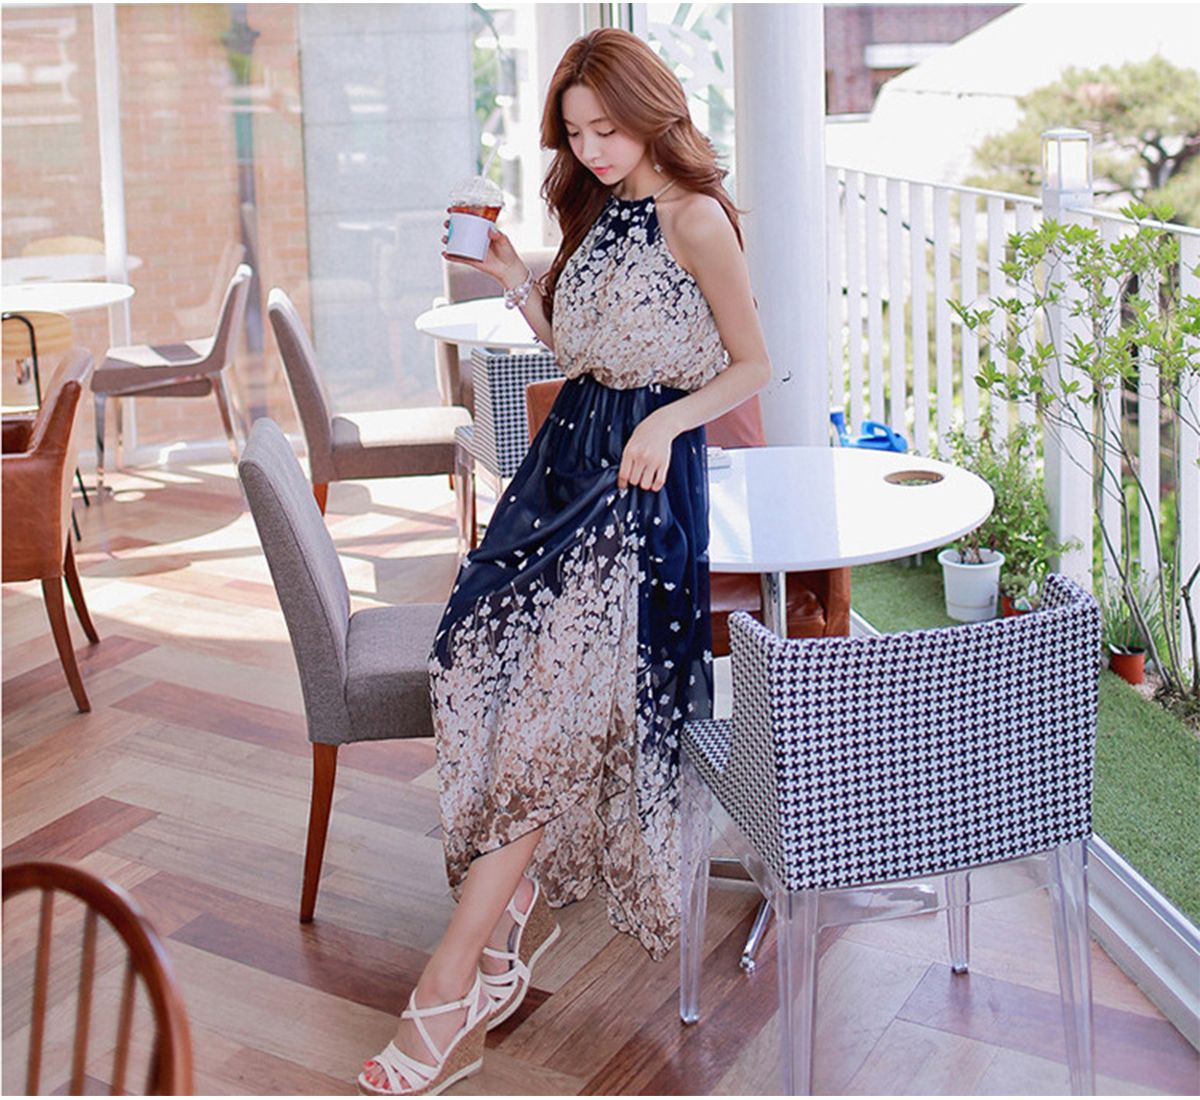 Long dress women dress party dress pinterest shopping woman